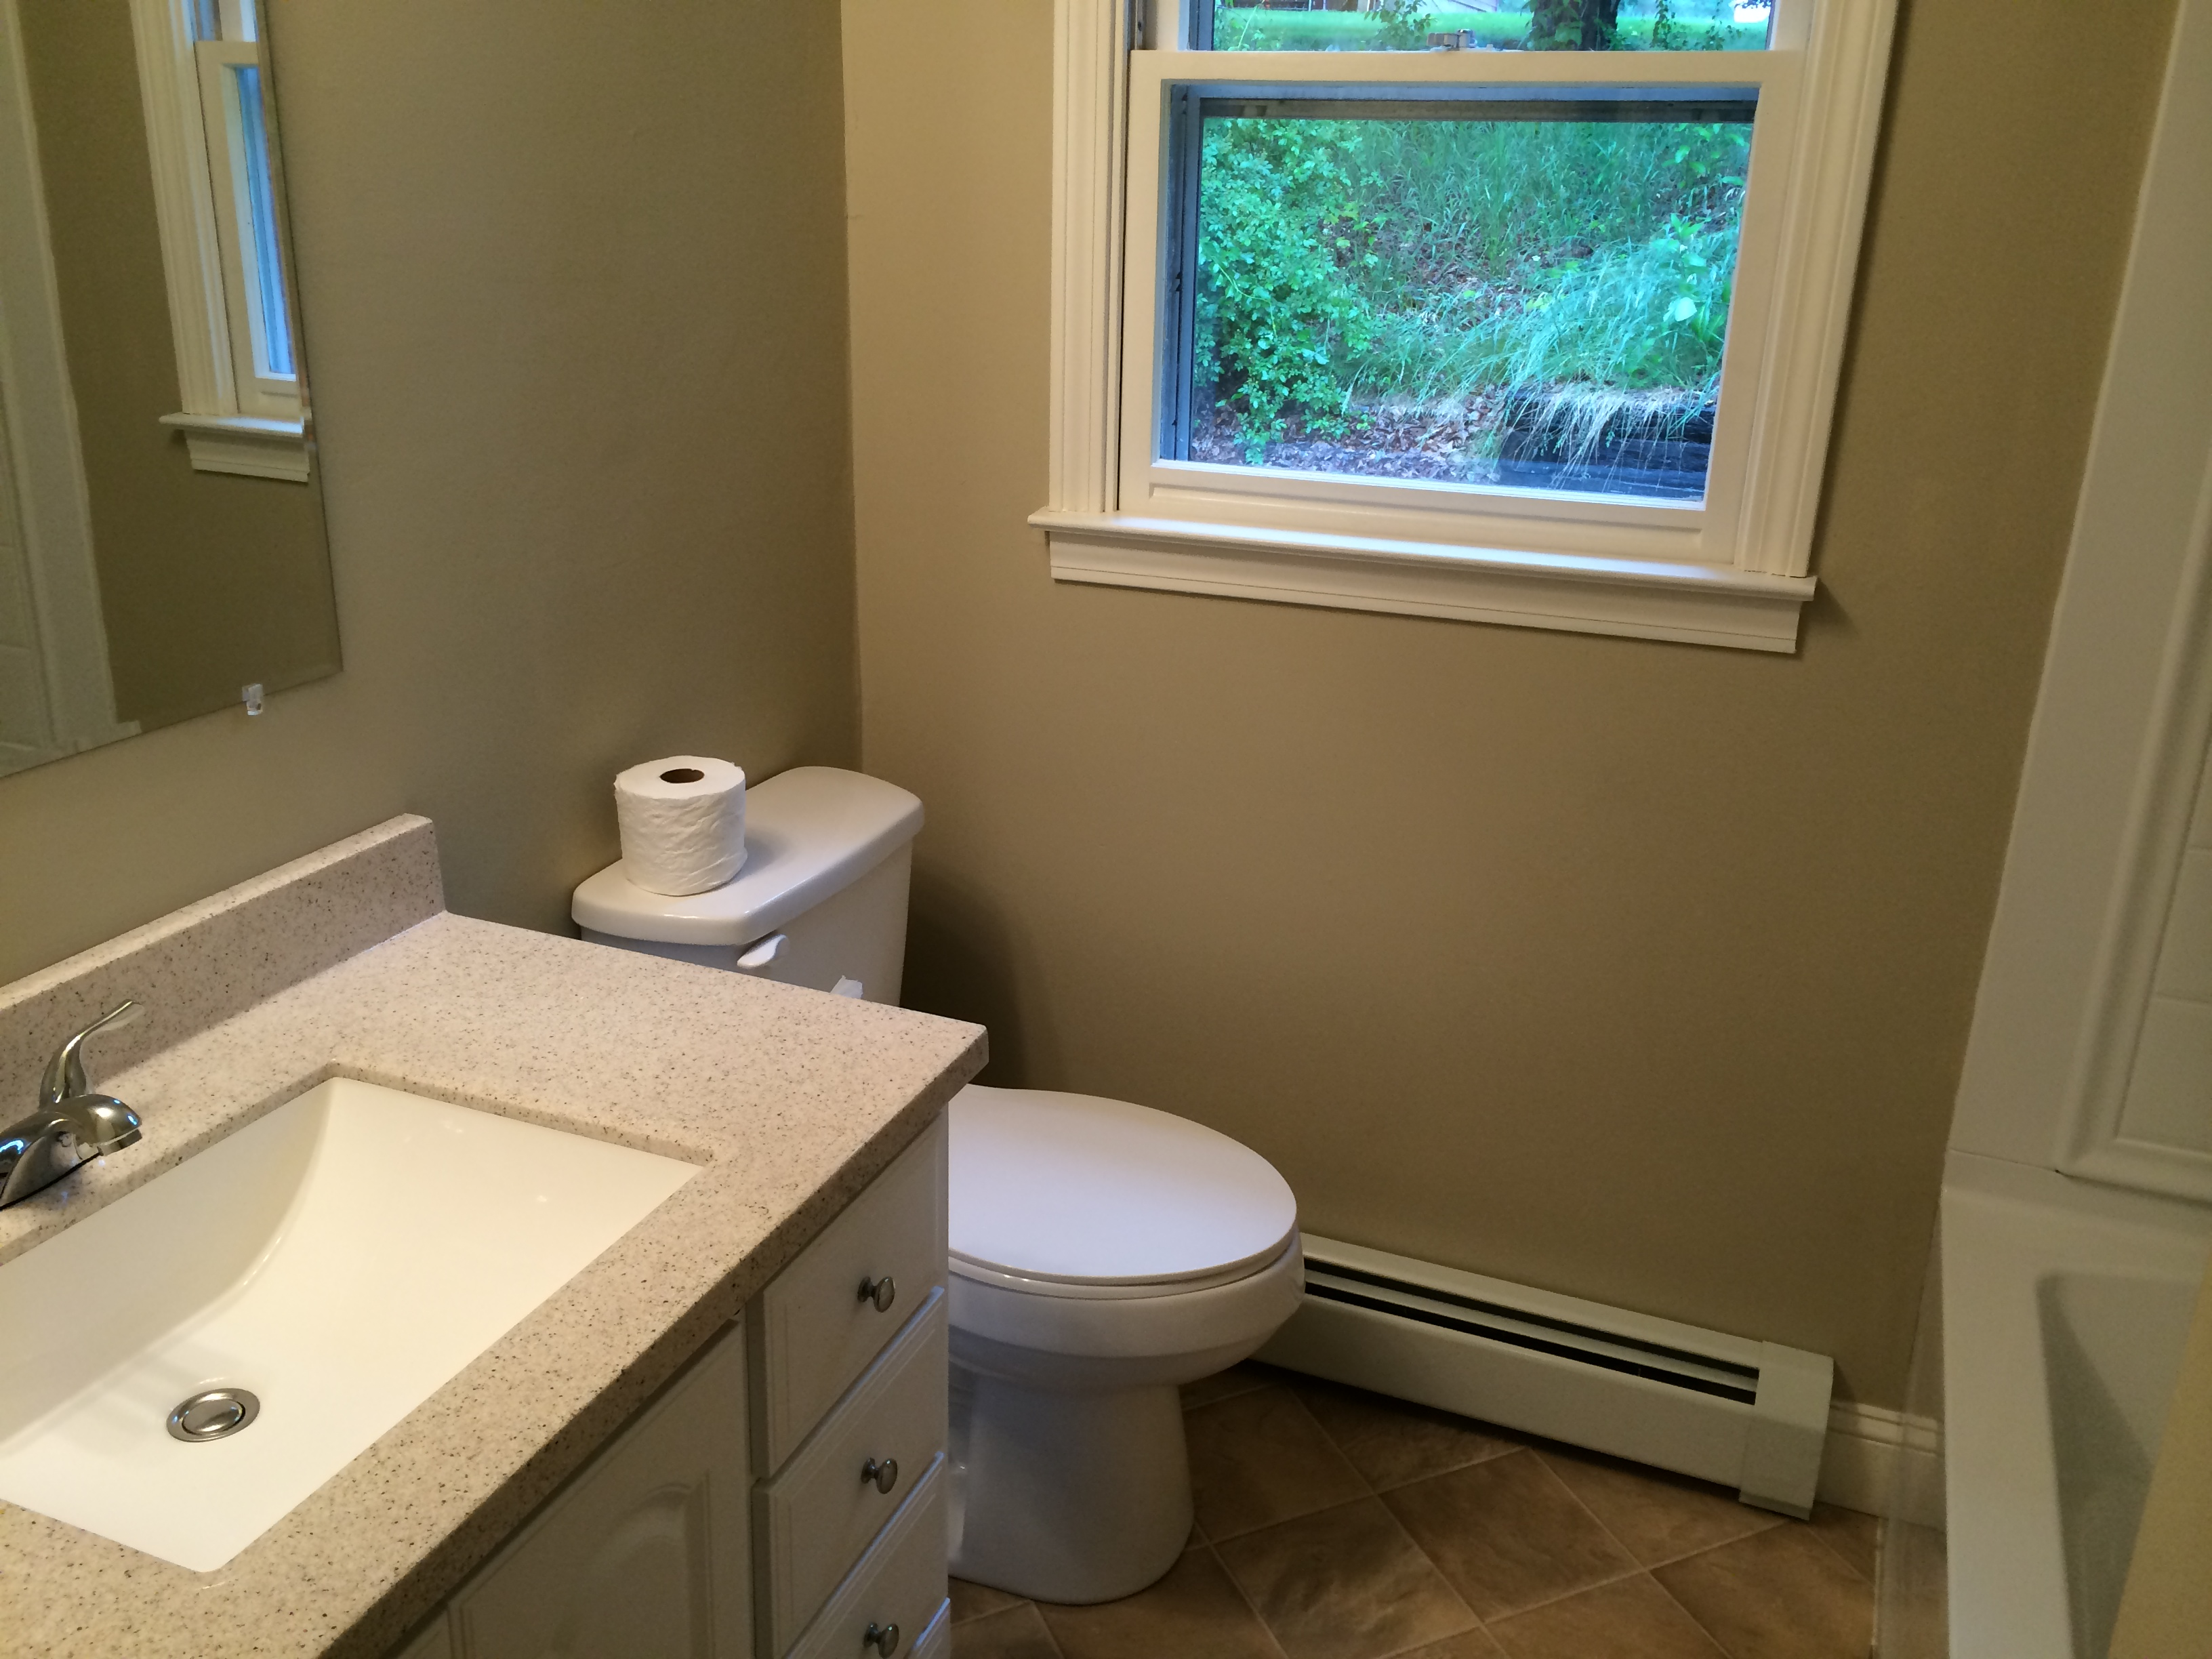 Bathroom Remodeling In Southern Maine Built By Adams - Bath remodeling companies